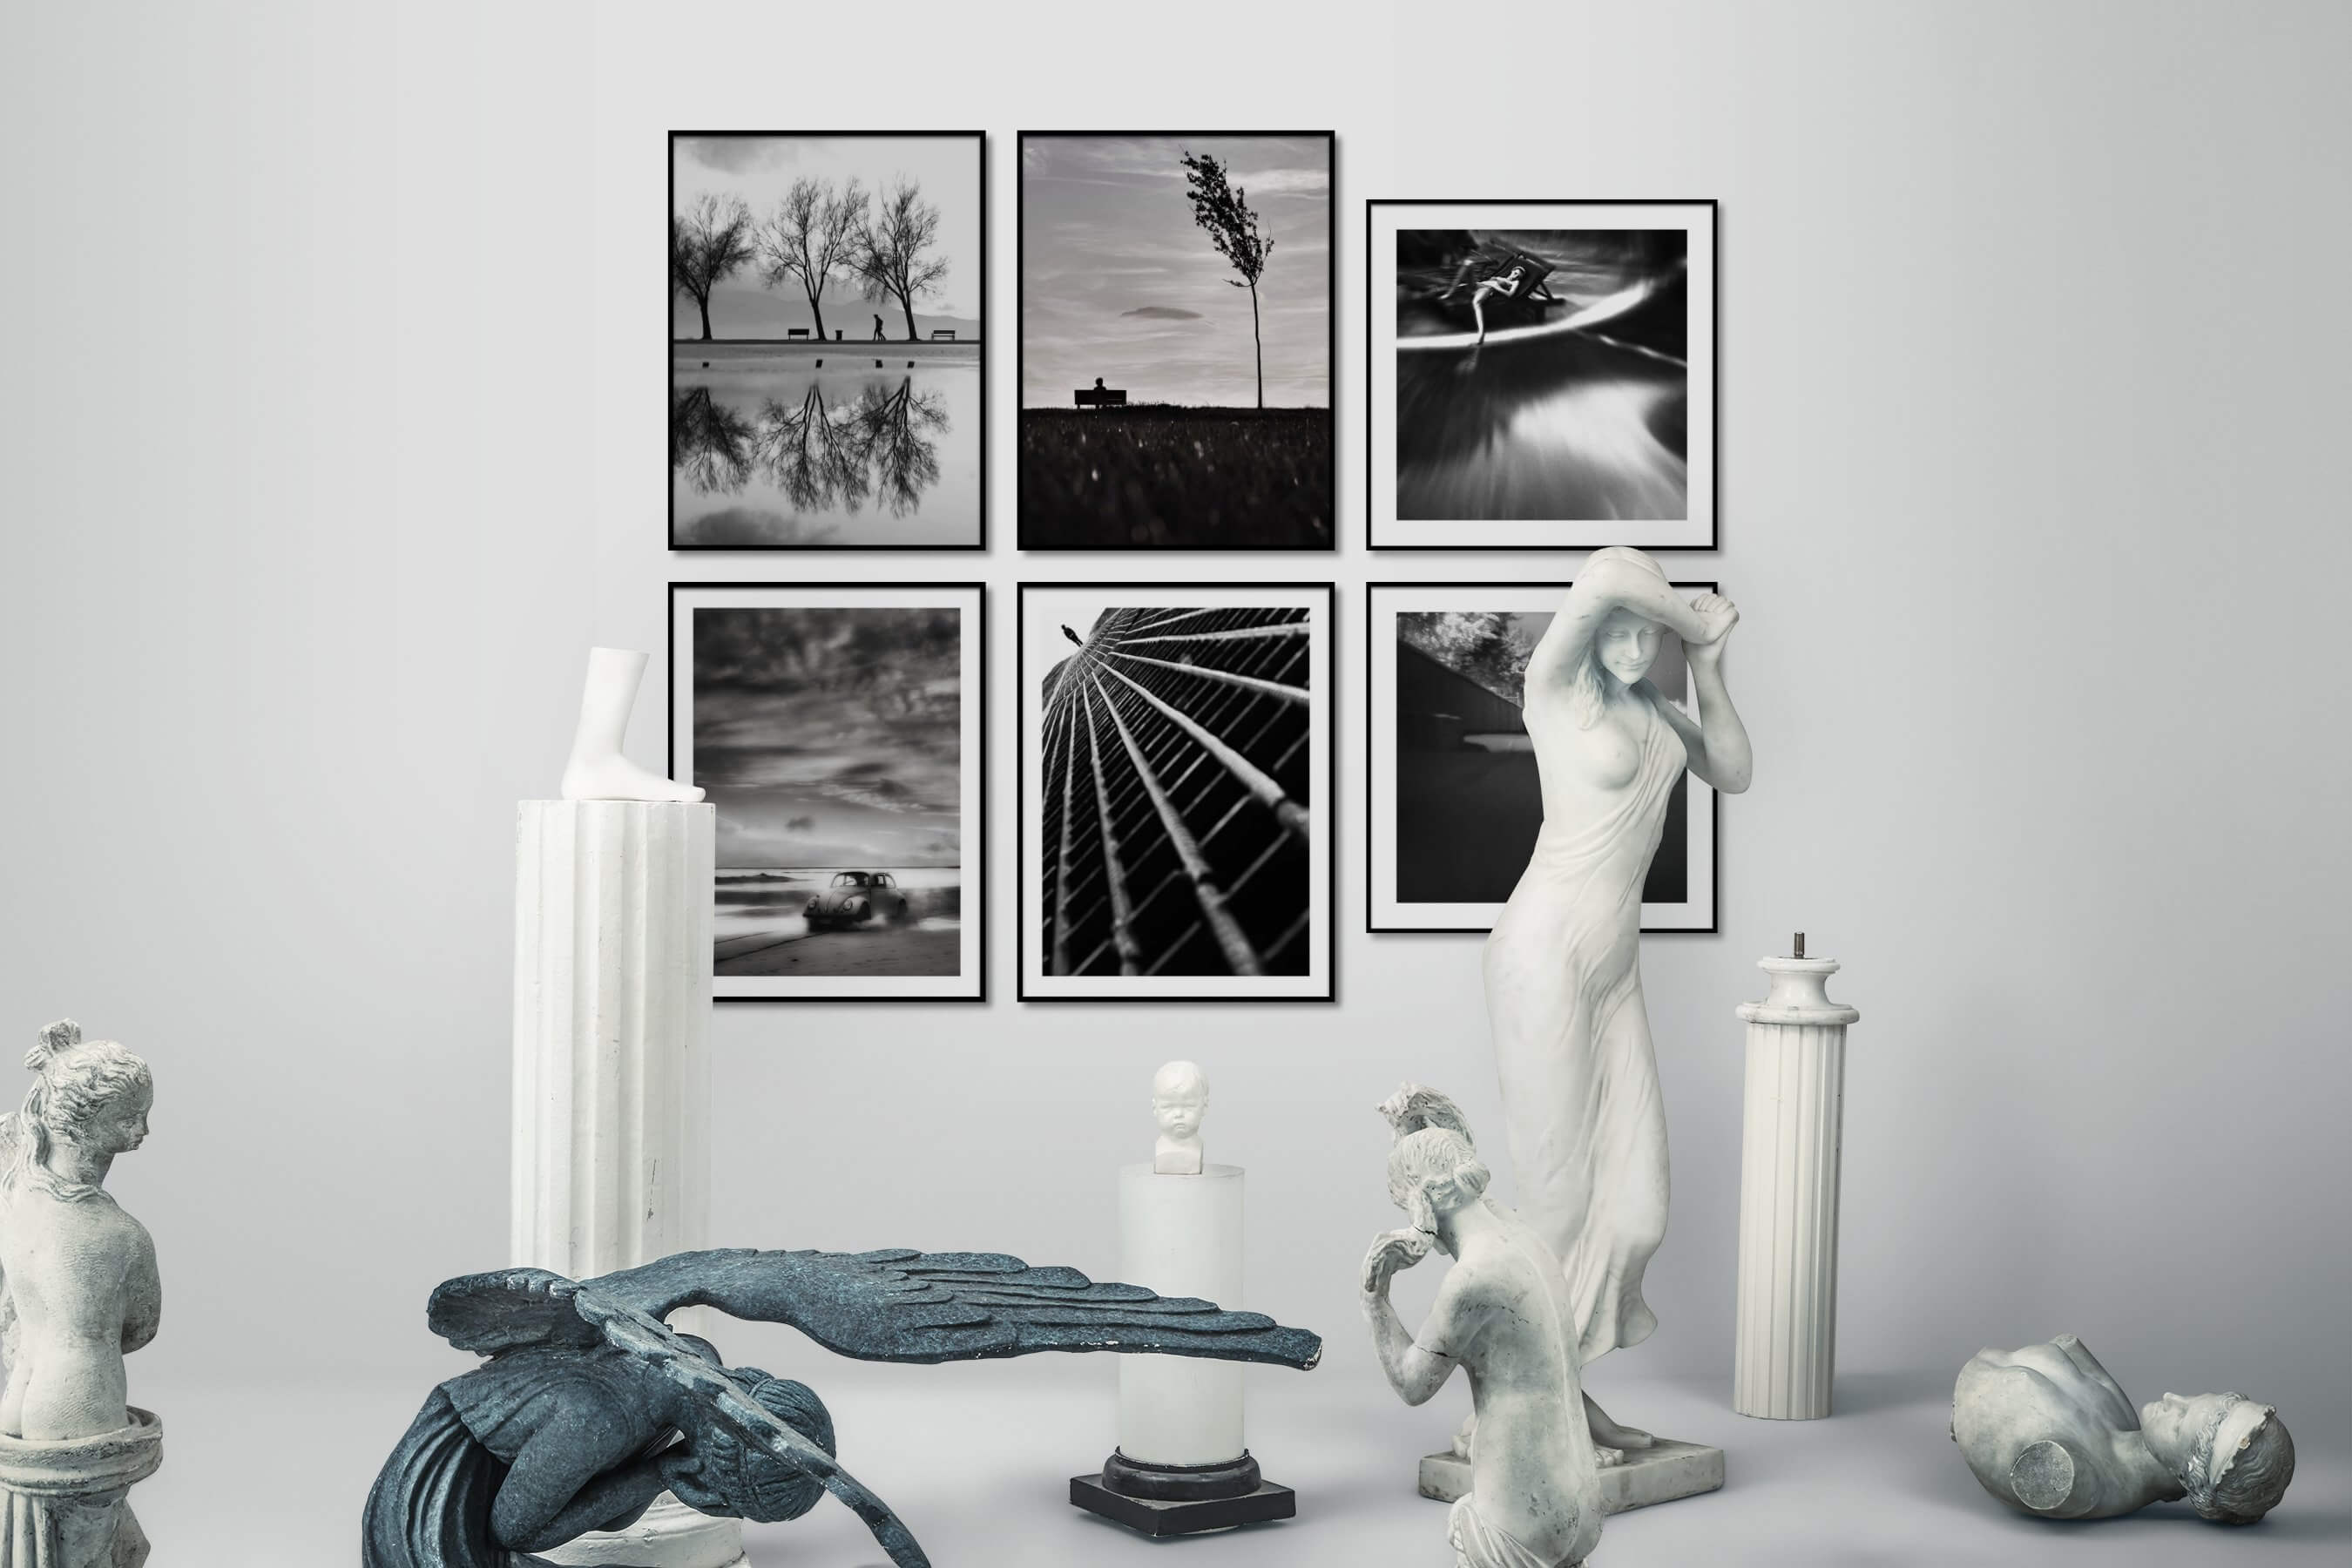 Gallery wall idea with six framed pictures arranged on a wall depicting Black & White, Nature, Country Life, Beach & Water, Vintage, For the Moderate, Artsy, and City Life